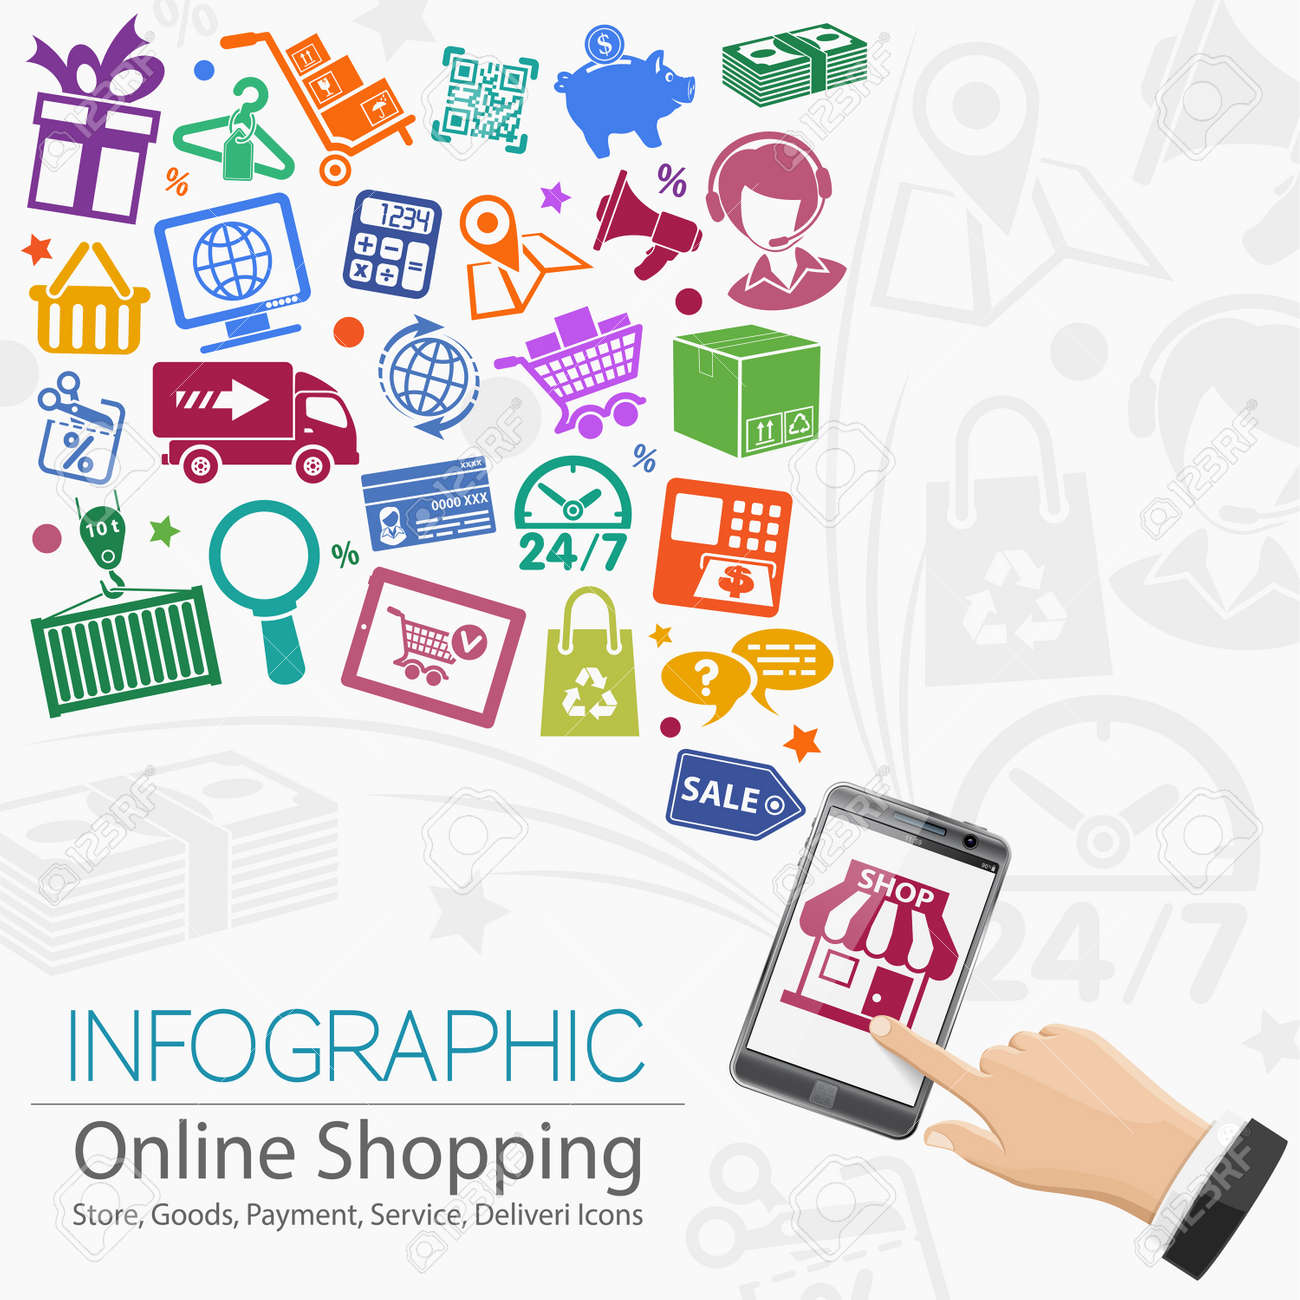 Internet Shopping Infographic with Hand, Set Icons for e-commerce, Box and Earth Map. - 36573605